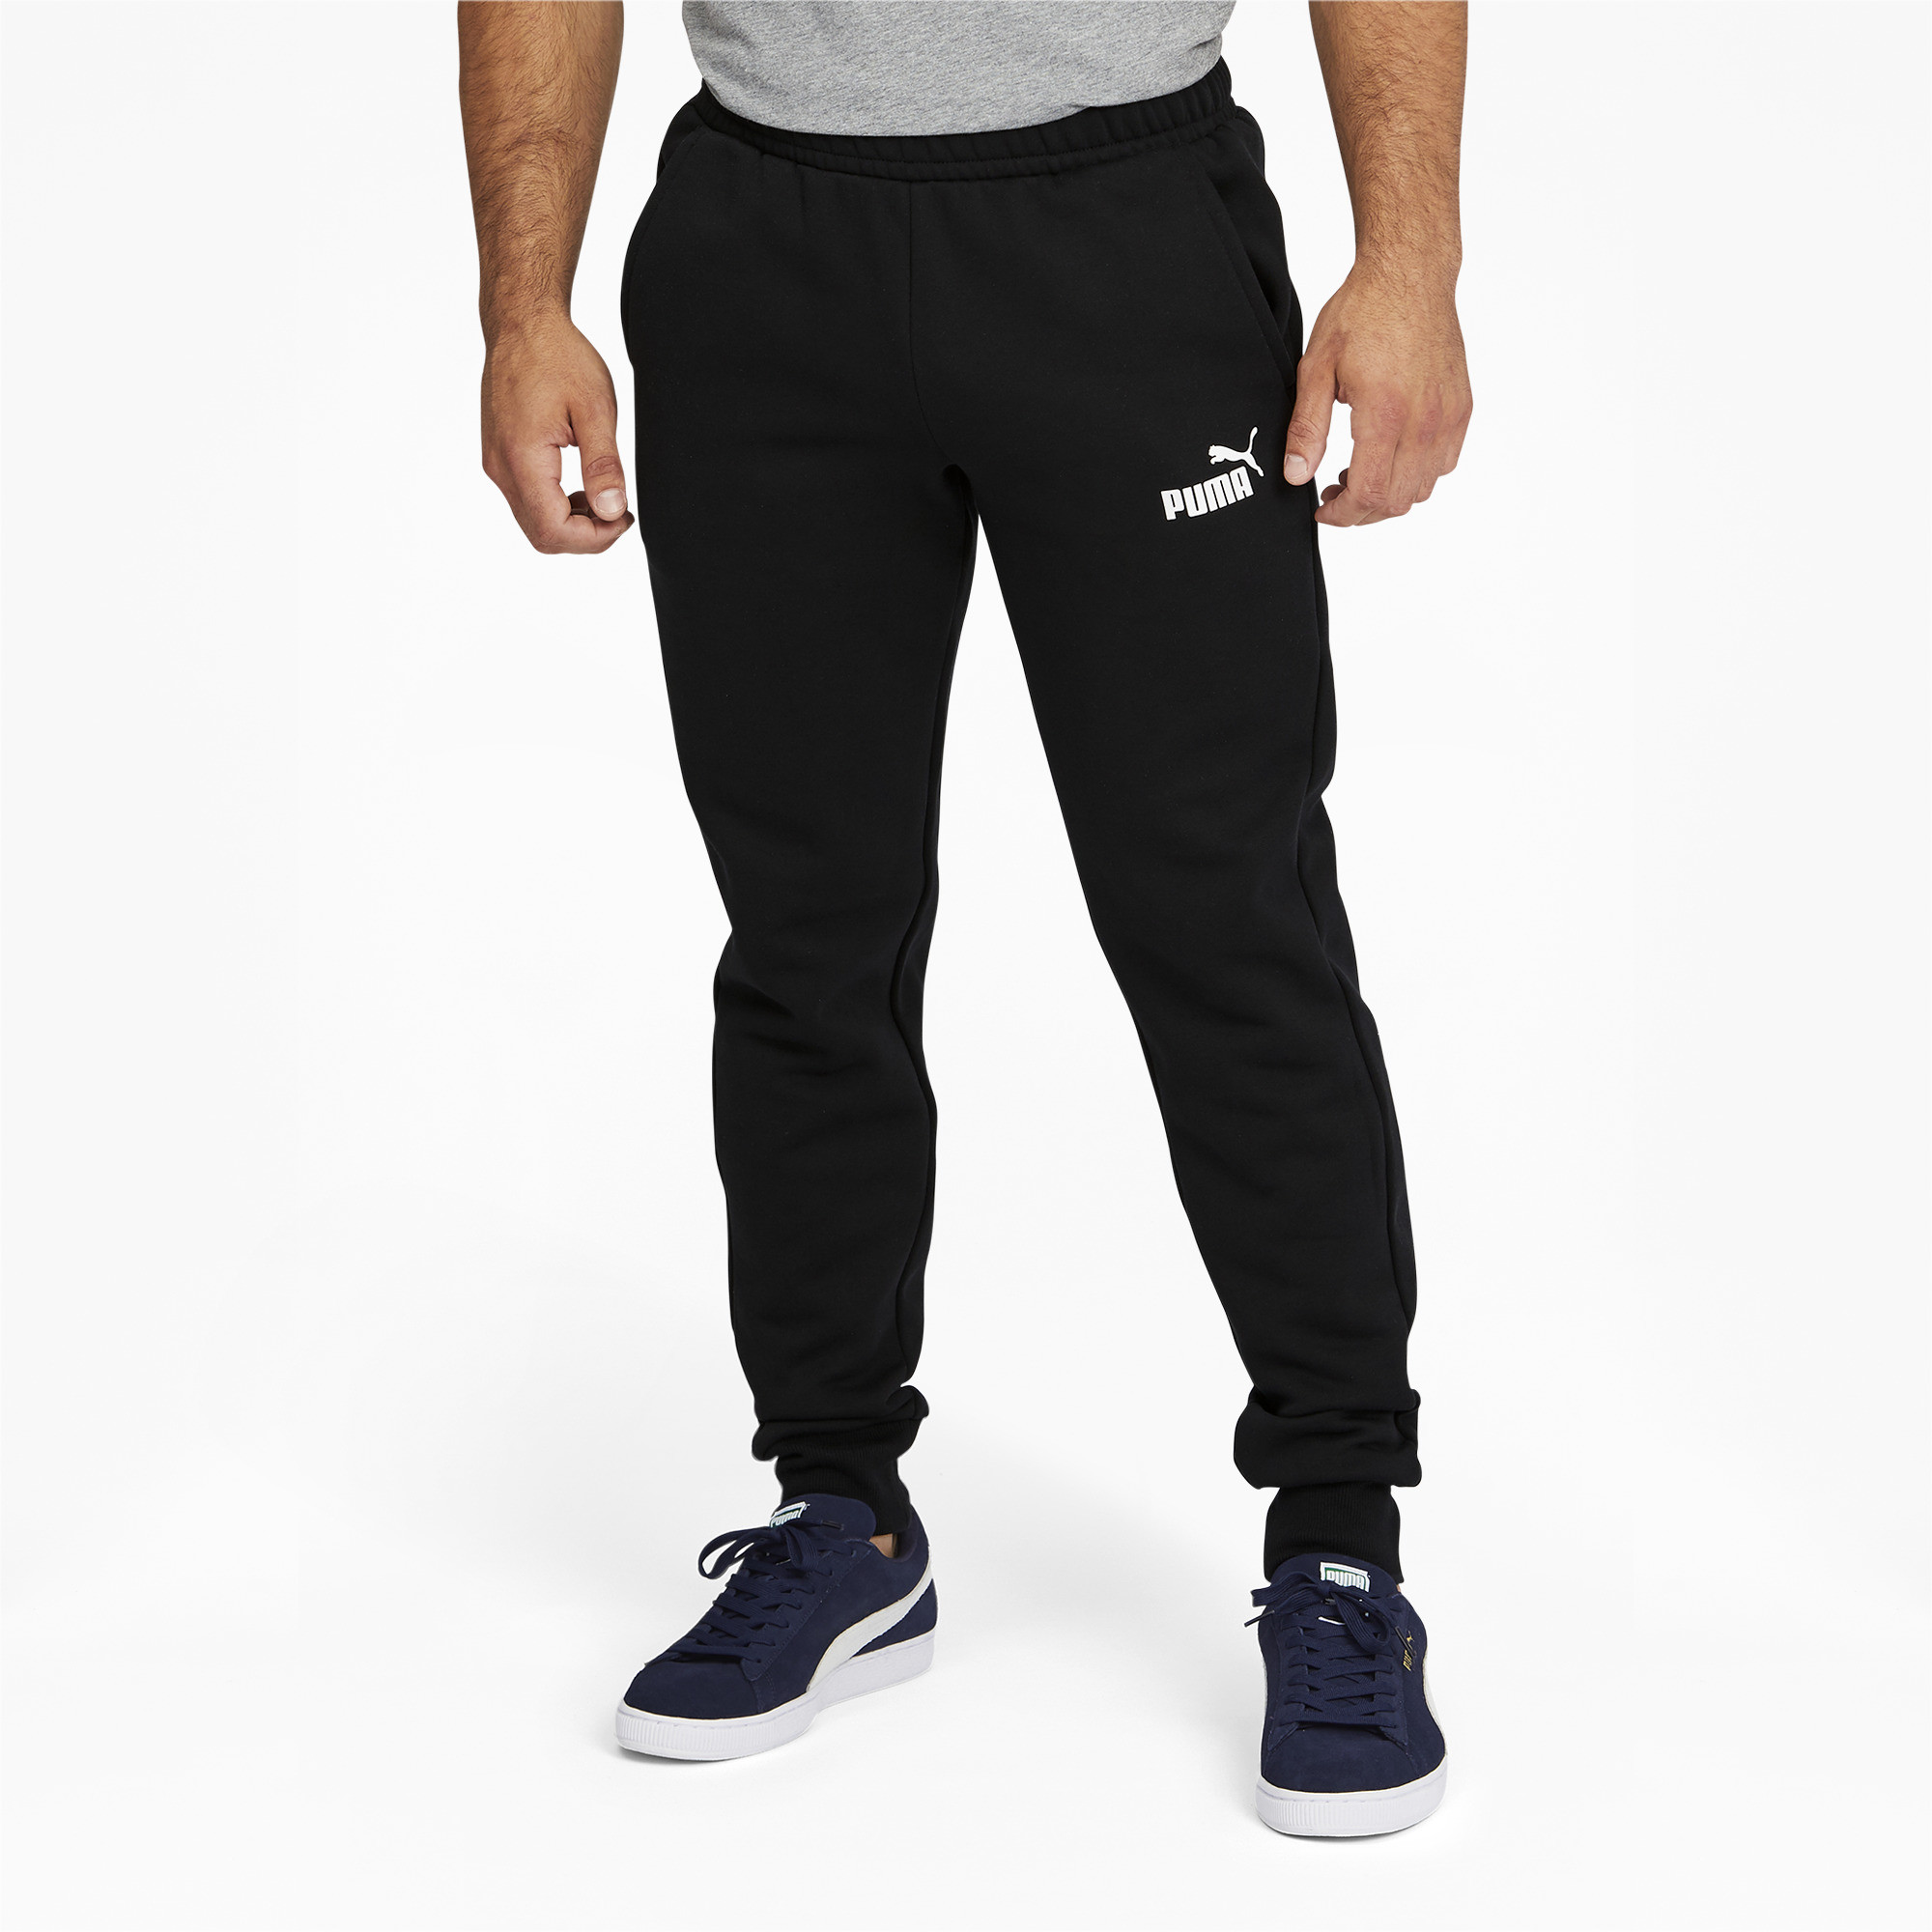 PUMA-Men-039-s-Essentials-Logo-Sweatpants thumbnail 4